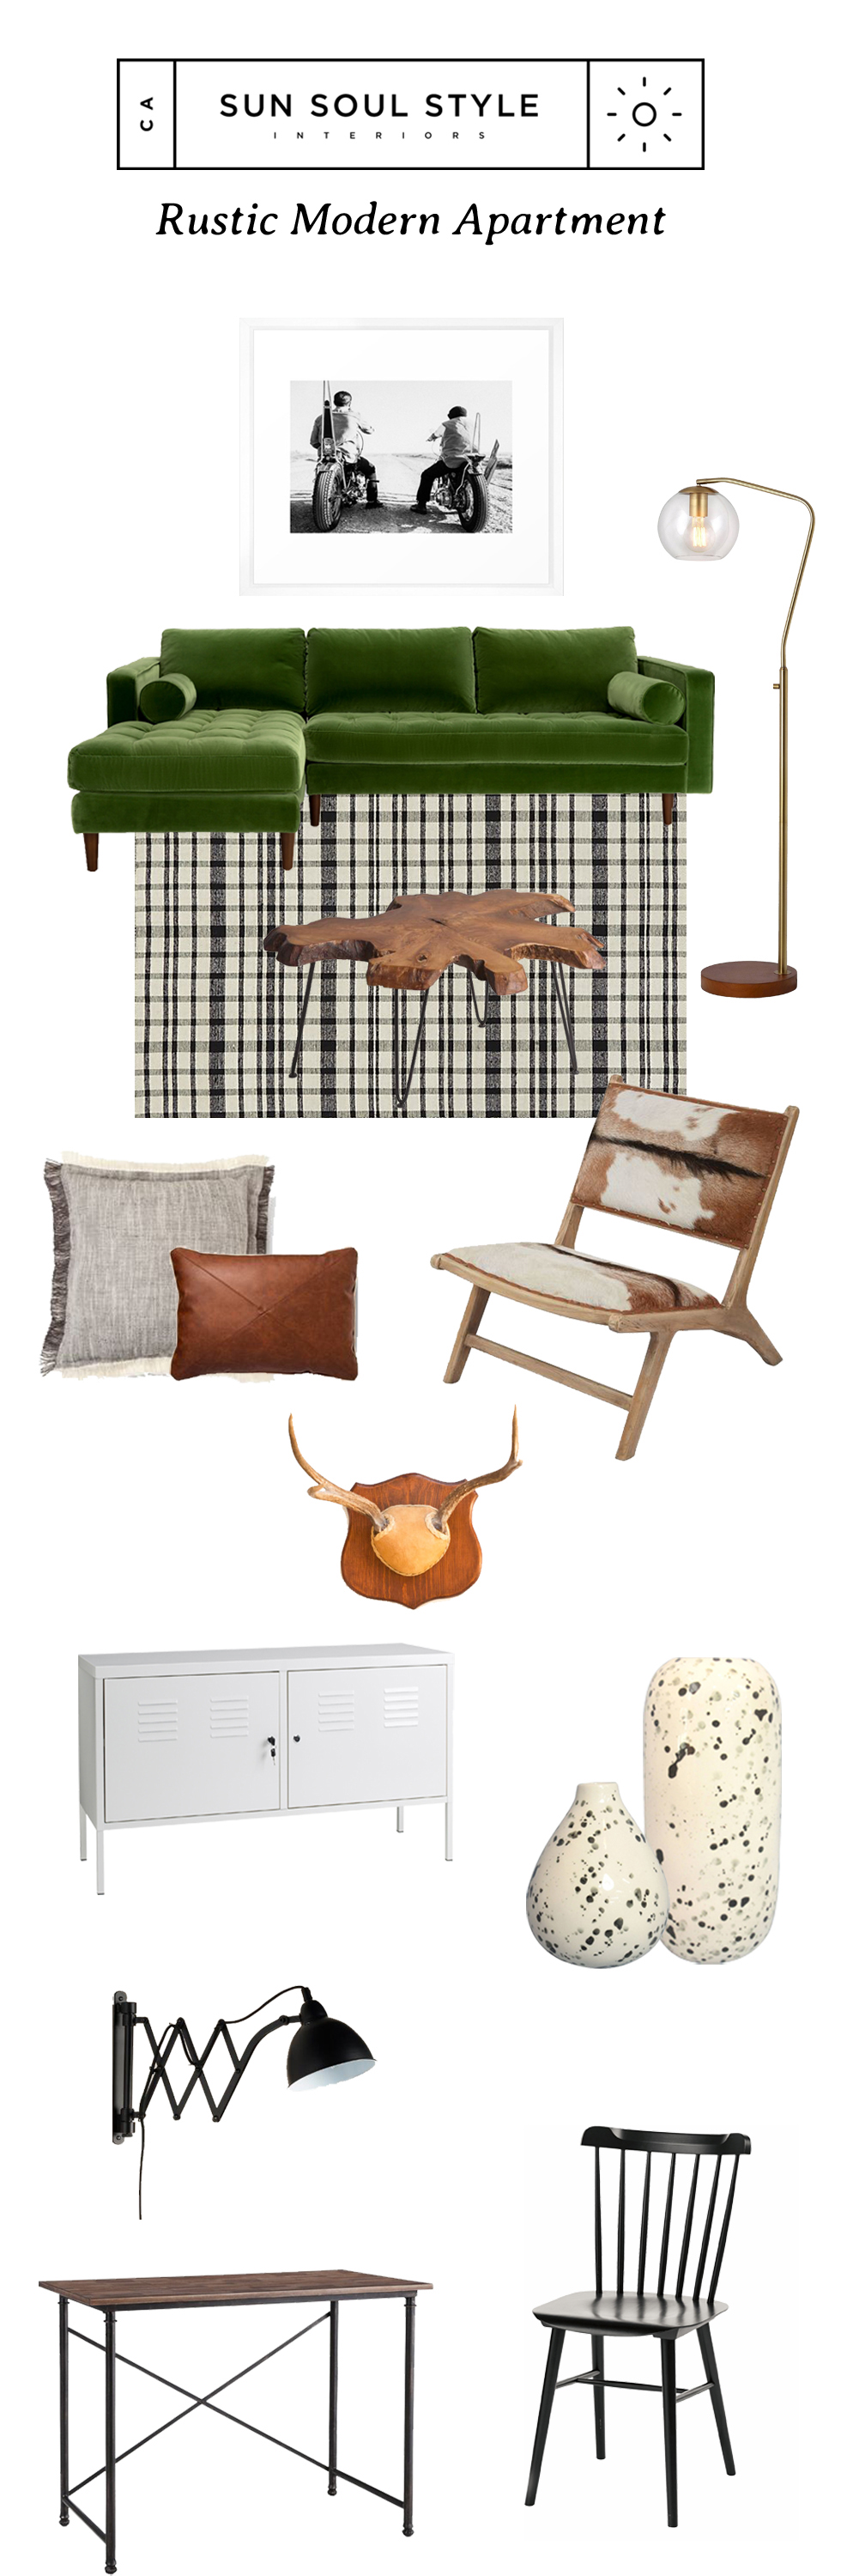 "From Top: ""Farm Boys"" art print  via Society6   // Sven Velvet Sectional  via Article  // Menlo Floor Lamp  via Target   // Black and White Checkered Rug  via CB2   // Wood Slice Coffee Table  via Cost Plus World Market   // Palomino Hide Chair  via Cost Plus World Market  // Grey Fringe Floor Pillow  via Target  // Faux Leather Pillow  via Target  // Wall Mount Deer Antlers  via Etsy  // PS Cabinet  via IKEA   // Speckled Vase  via Target  // Speckled Bud Vase  via Target  // Black Metal Accordion Sconce  via Cost Plus World Market   // Mixed Material Desk  via Target   // Black Windsor Dining Chairs  via Wayfair"